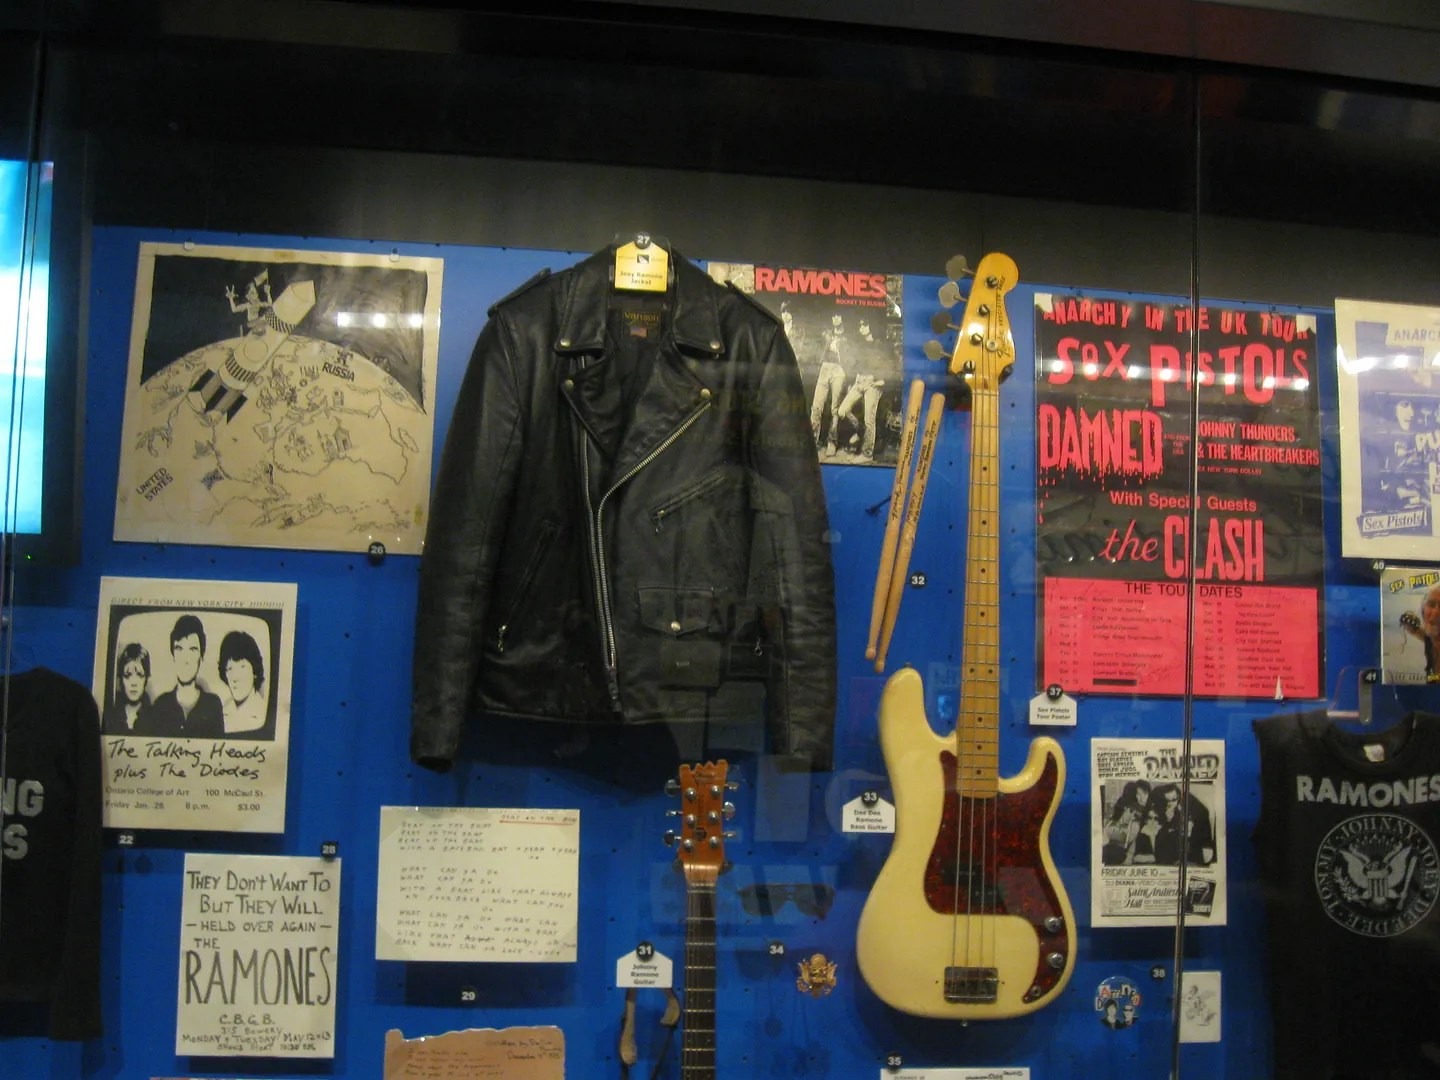 Joey Ramone jacket, Cleveland, Ohio